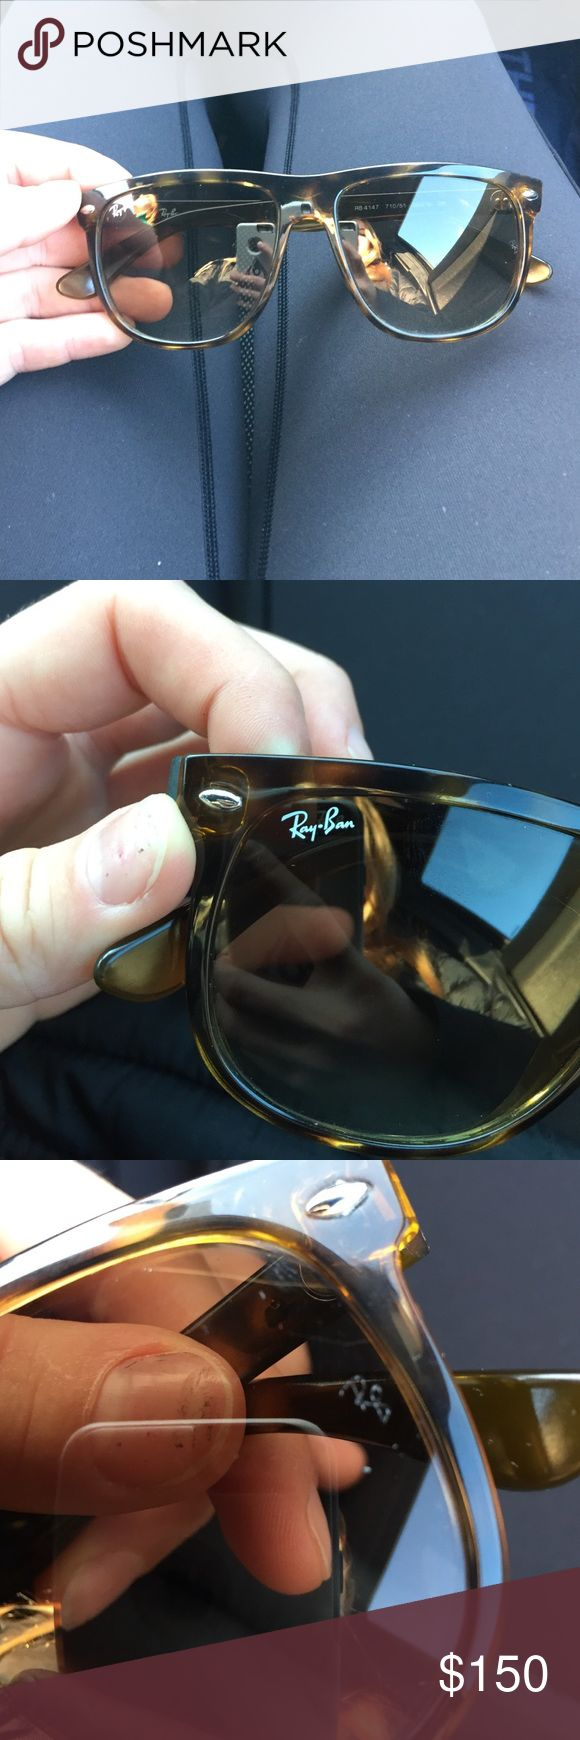 RB4147 Ray bans Tortoise Shell Authentic, only a few minor scratches on lenses but doesn't affect vision, no case or wipe, tortoise color Ray-Ban Accessories Sunglasses